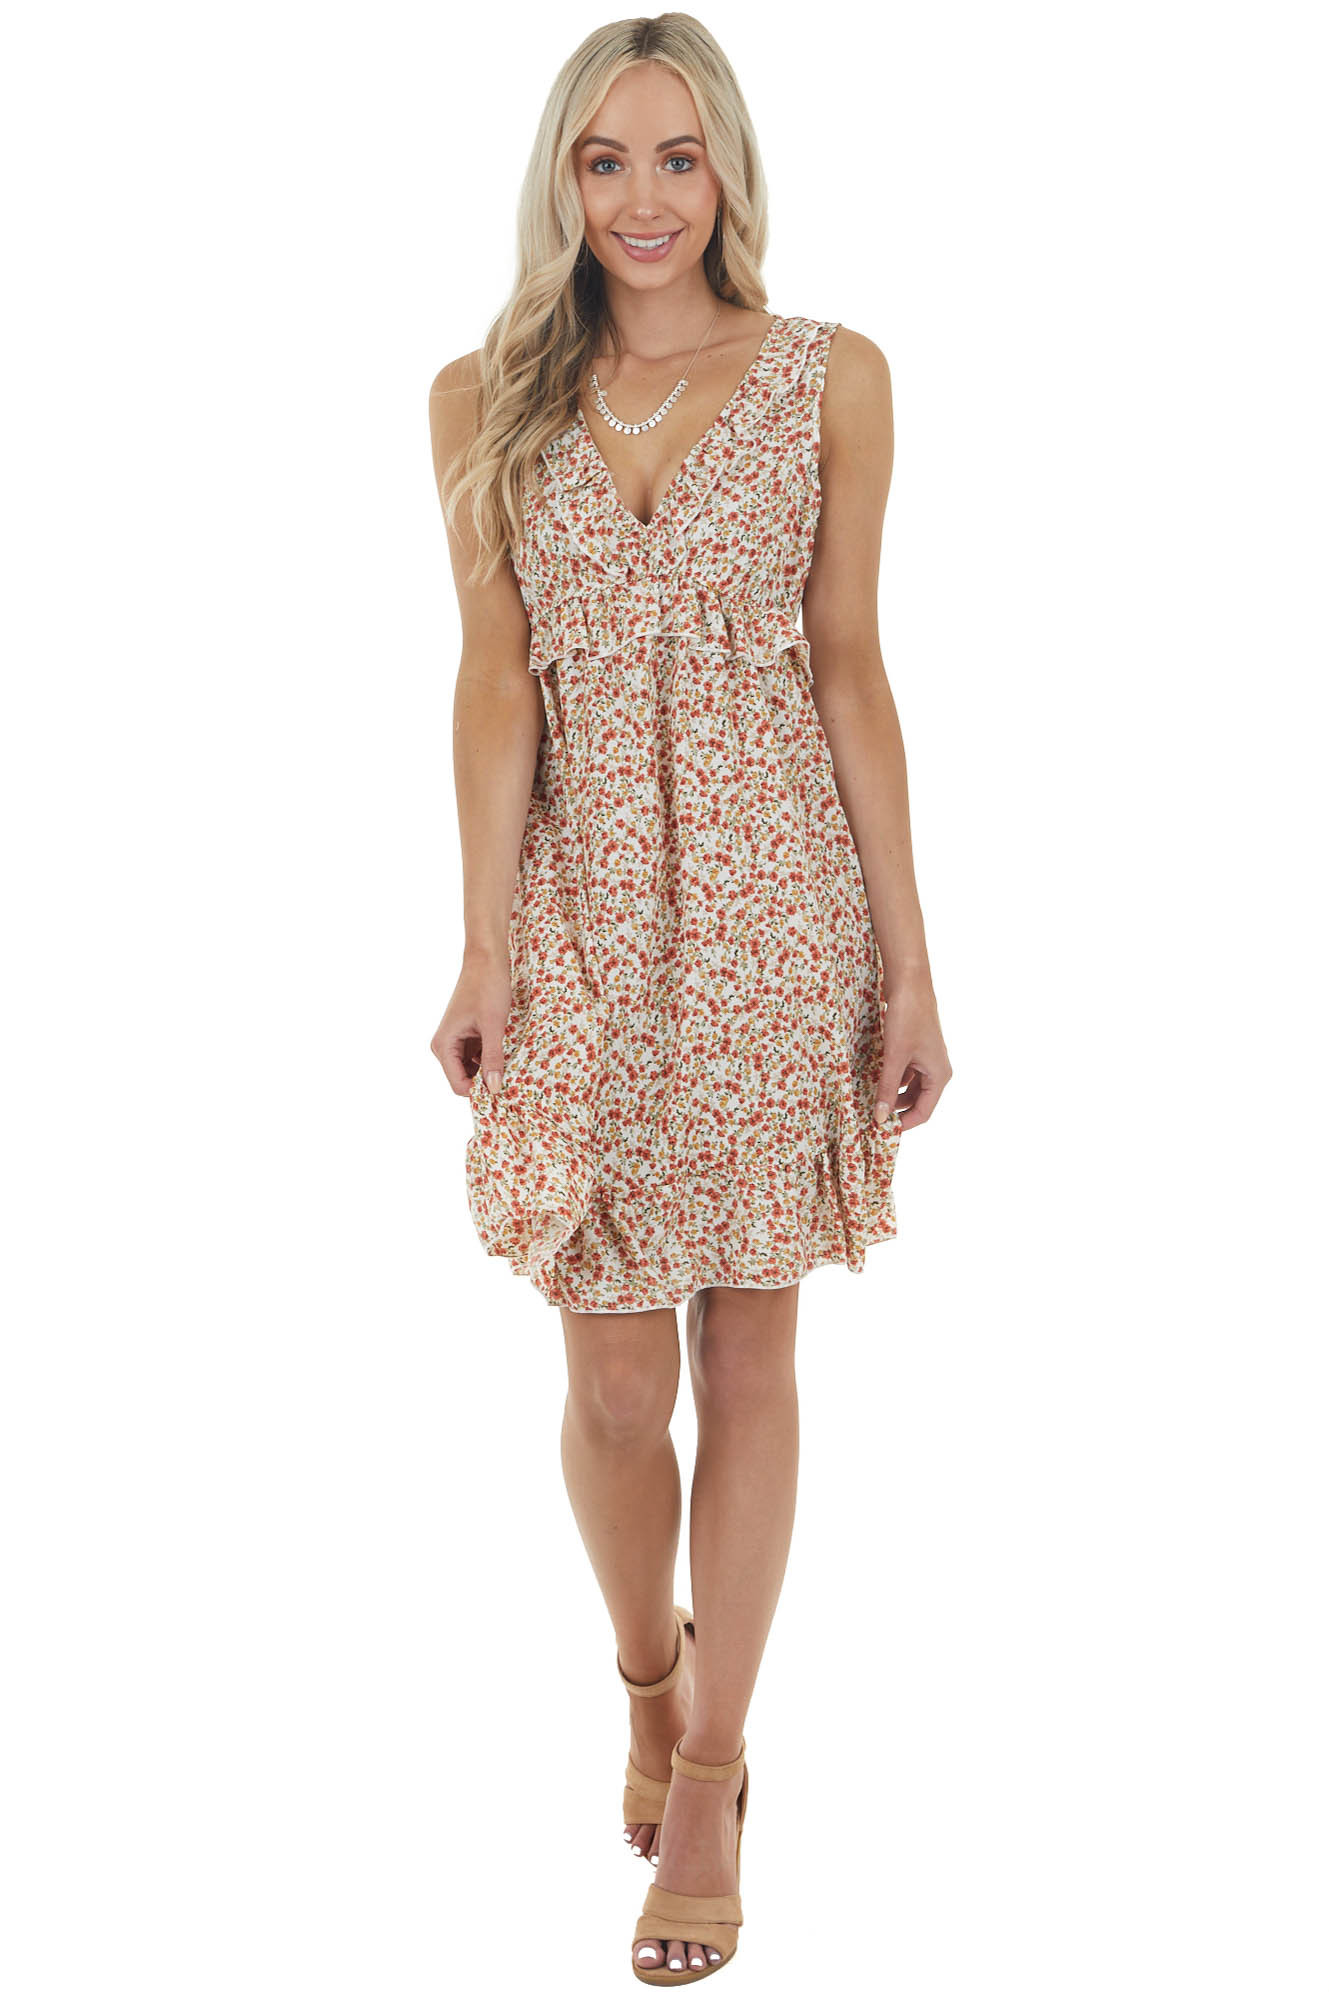 Pearl Ditsy Floral Sleeveless Short Dress with Ruffle Detail